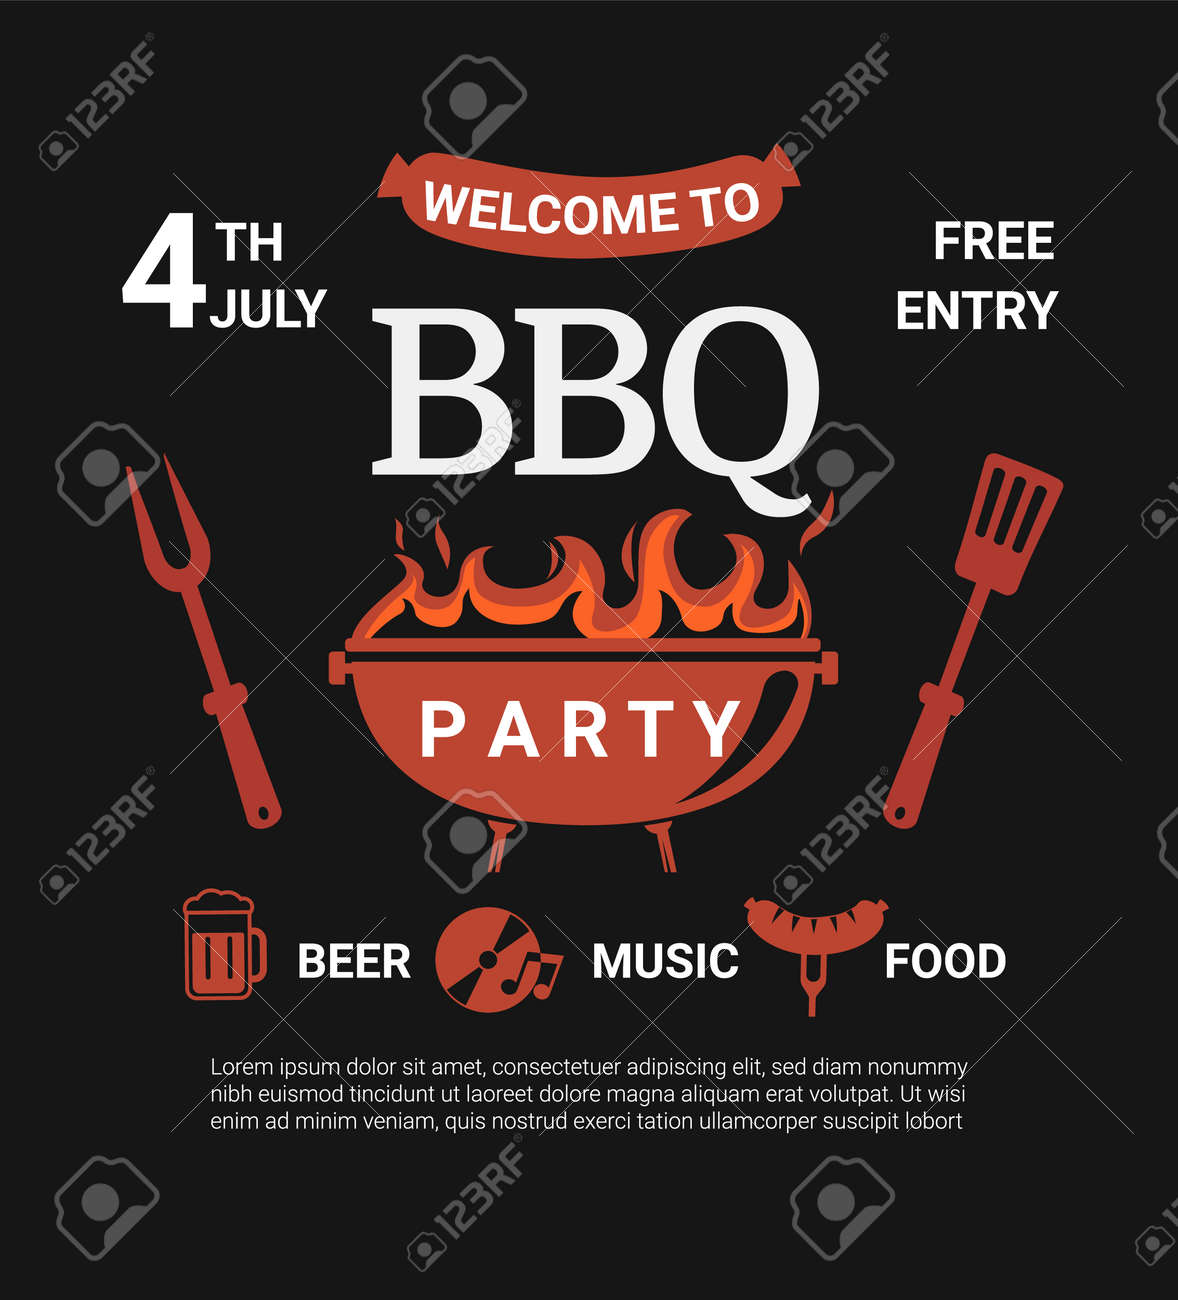 Welcome BBQ party flyer. - 168829711